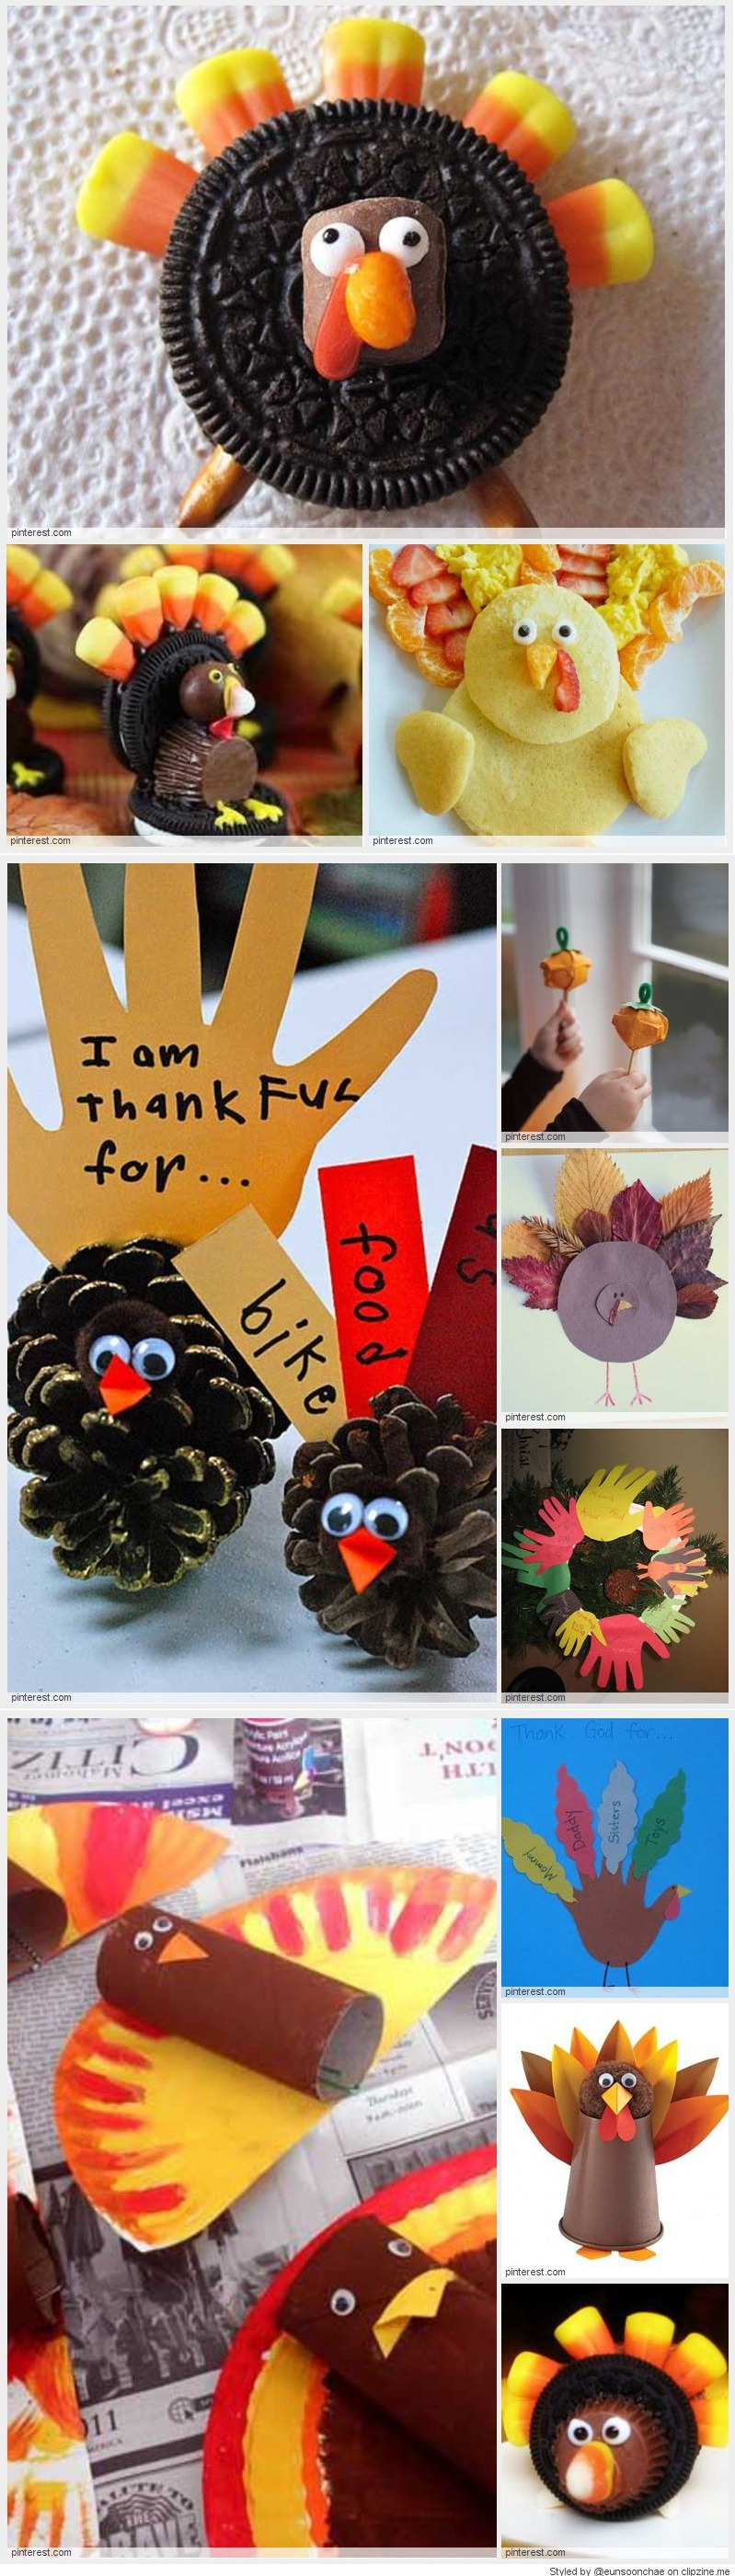 Thanksgiving crafts for kids ideas